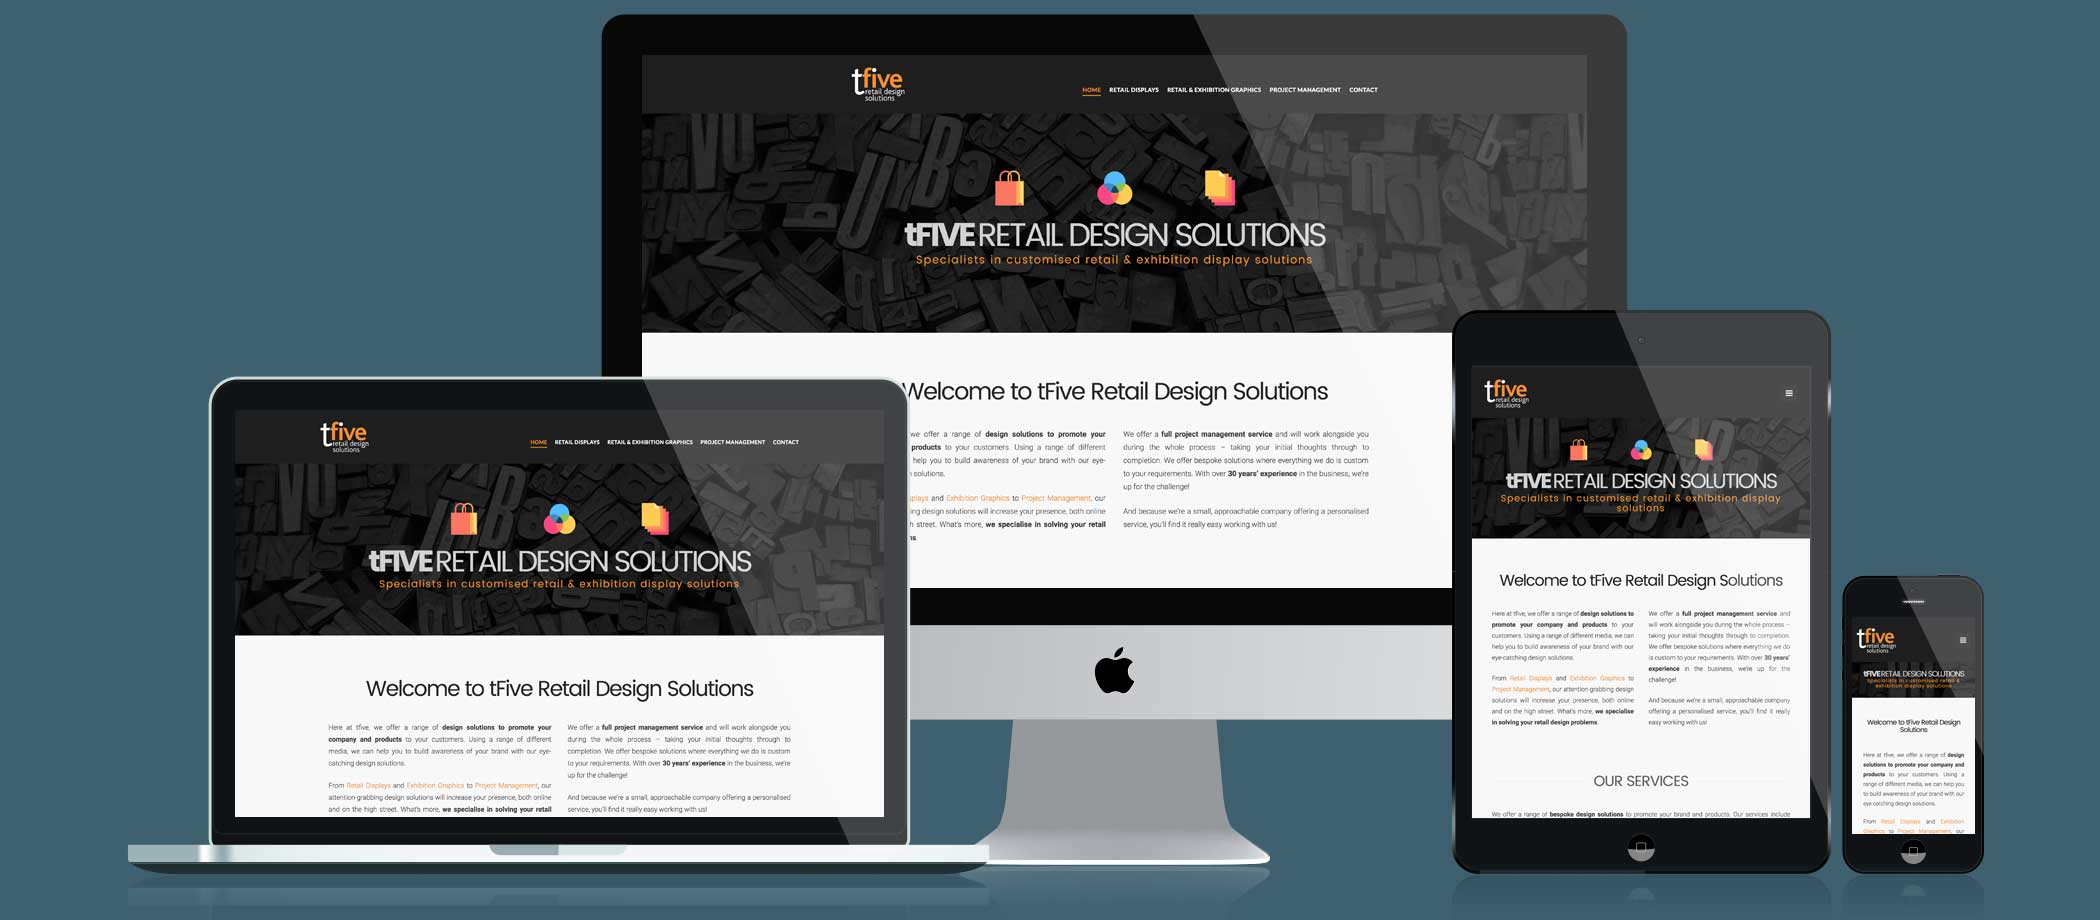 TFive Retail Design Solutions website responsive displays